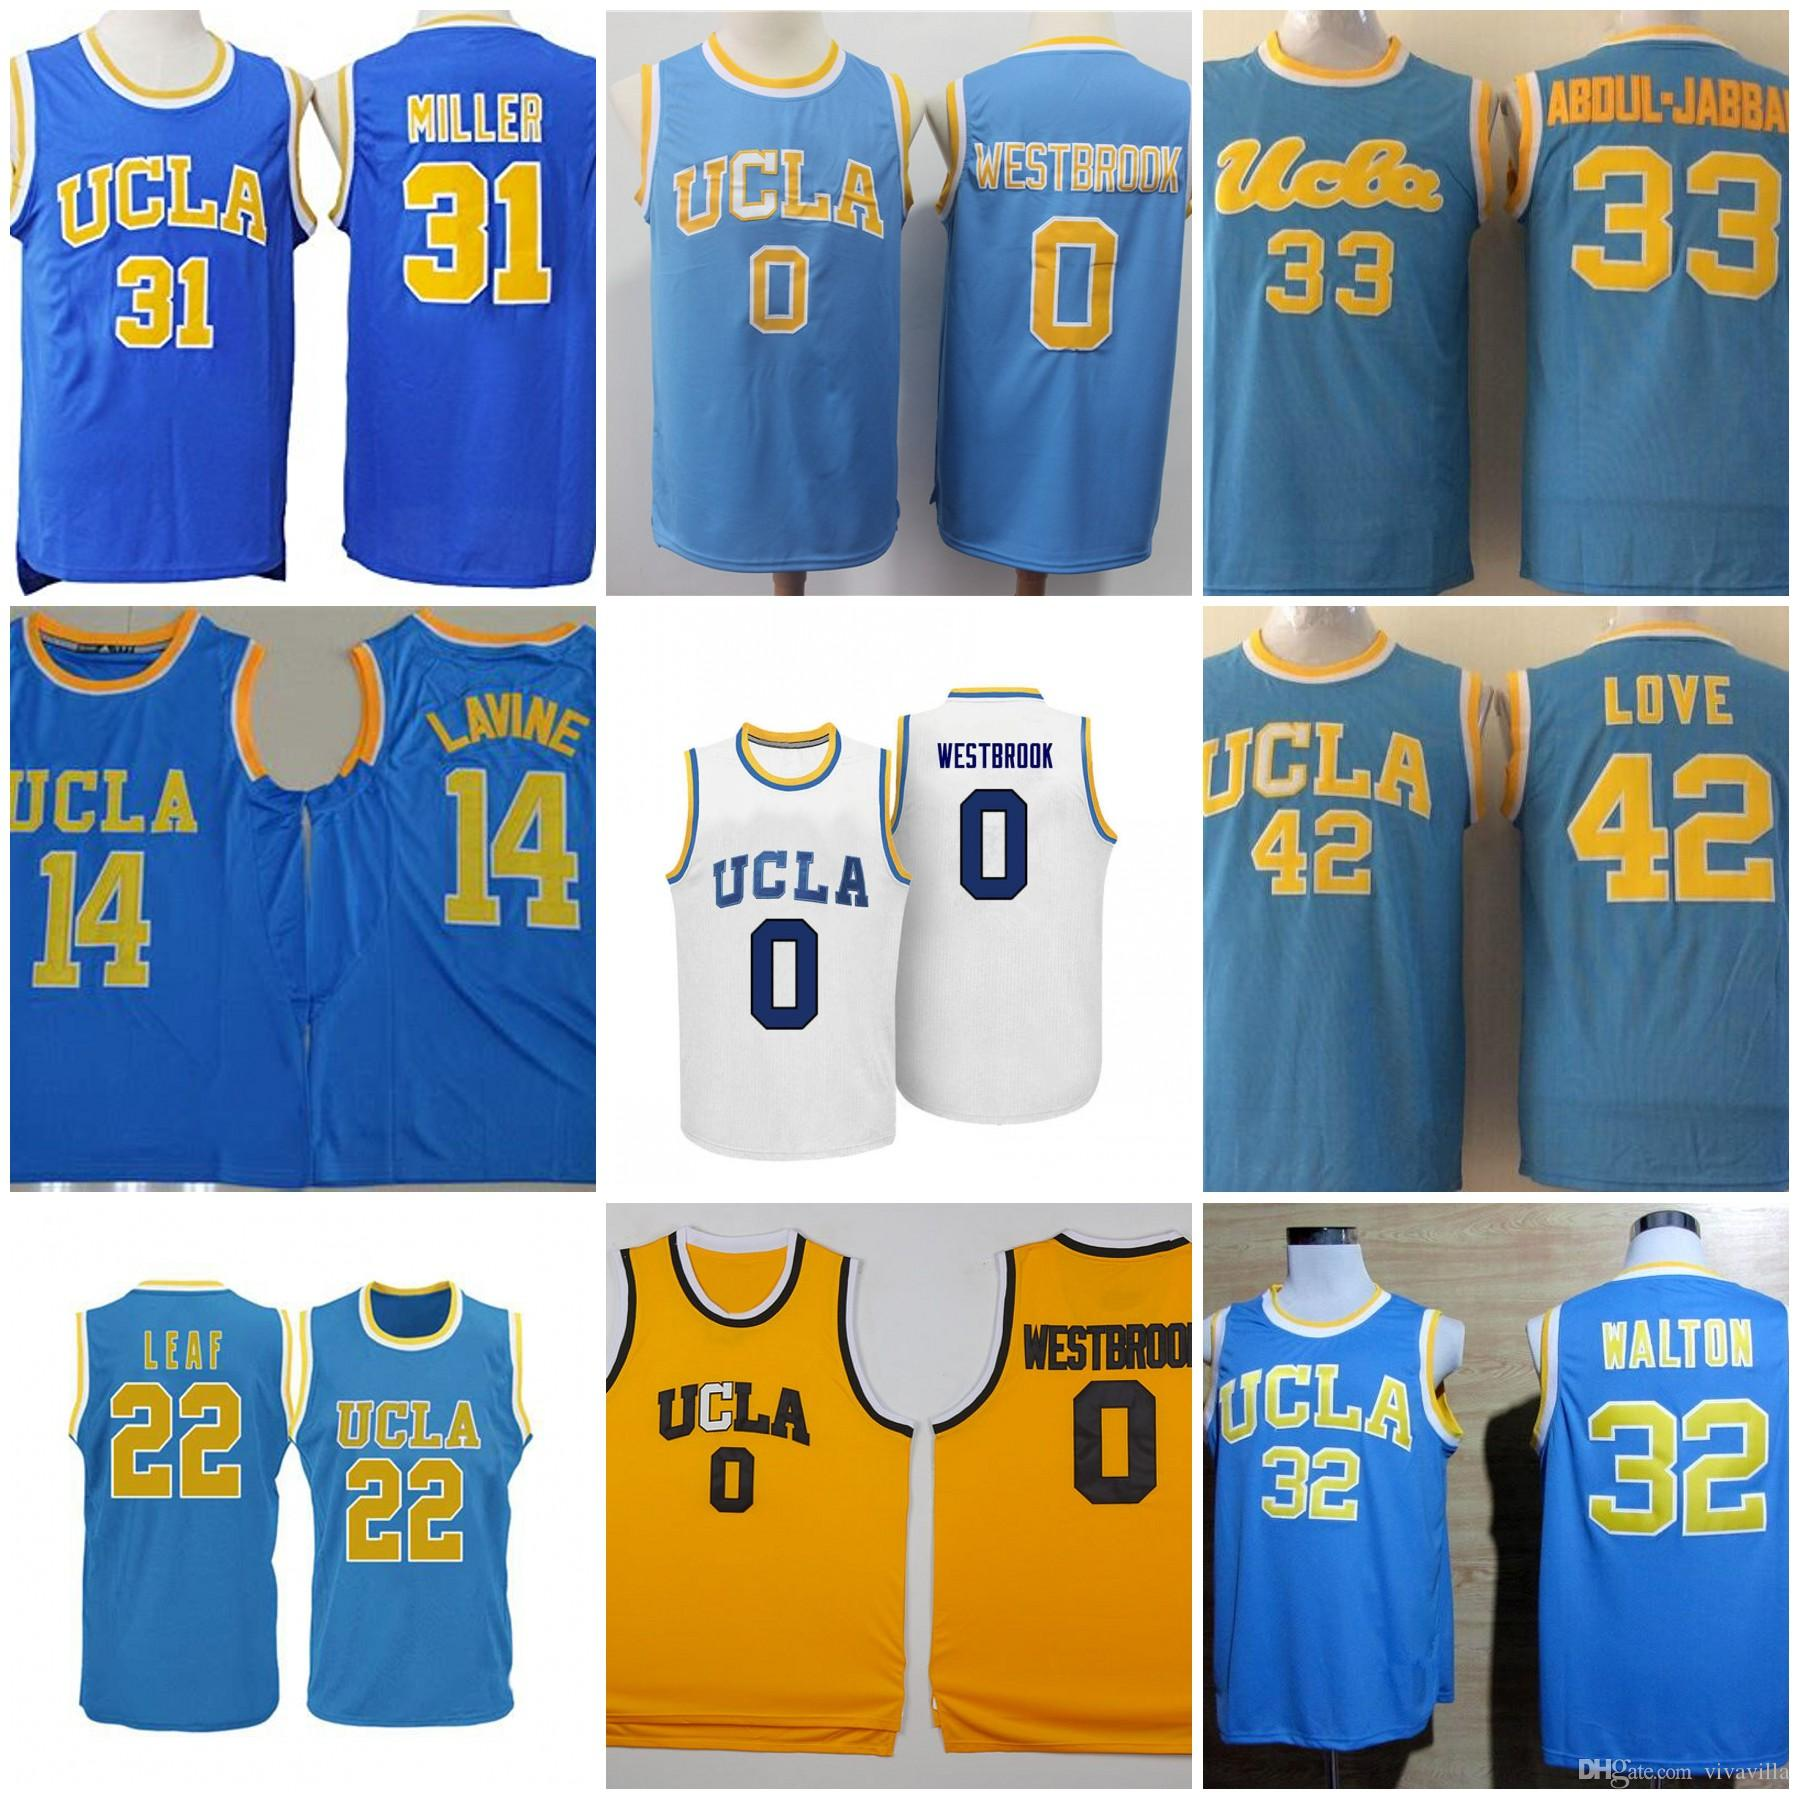 71fa128dcaf 2019 UCLA Bruins Jersey 0 Russell Westbrook 2 Lonzo Ball 14 Zach LaVine  Kevin Love Reggie Miller Leaf College Basketball University Jerseys From  Vivavilla, ...